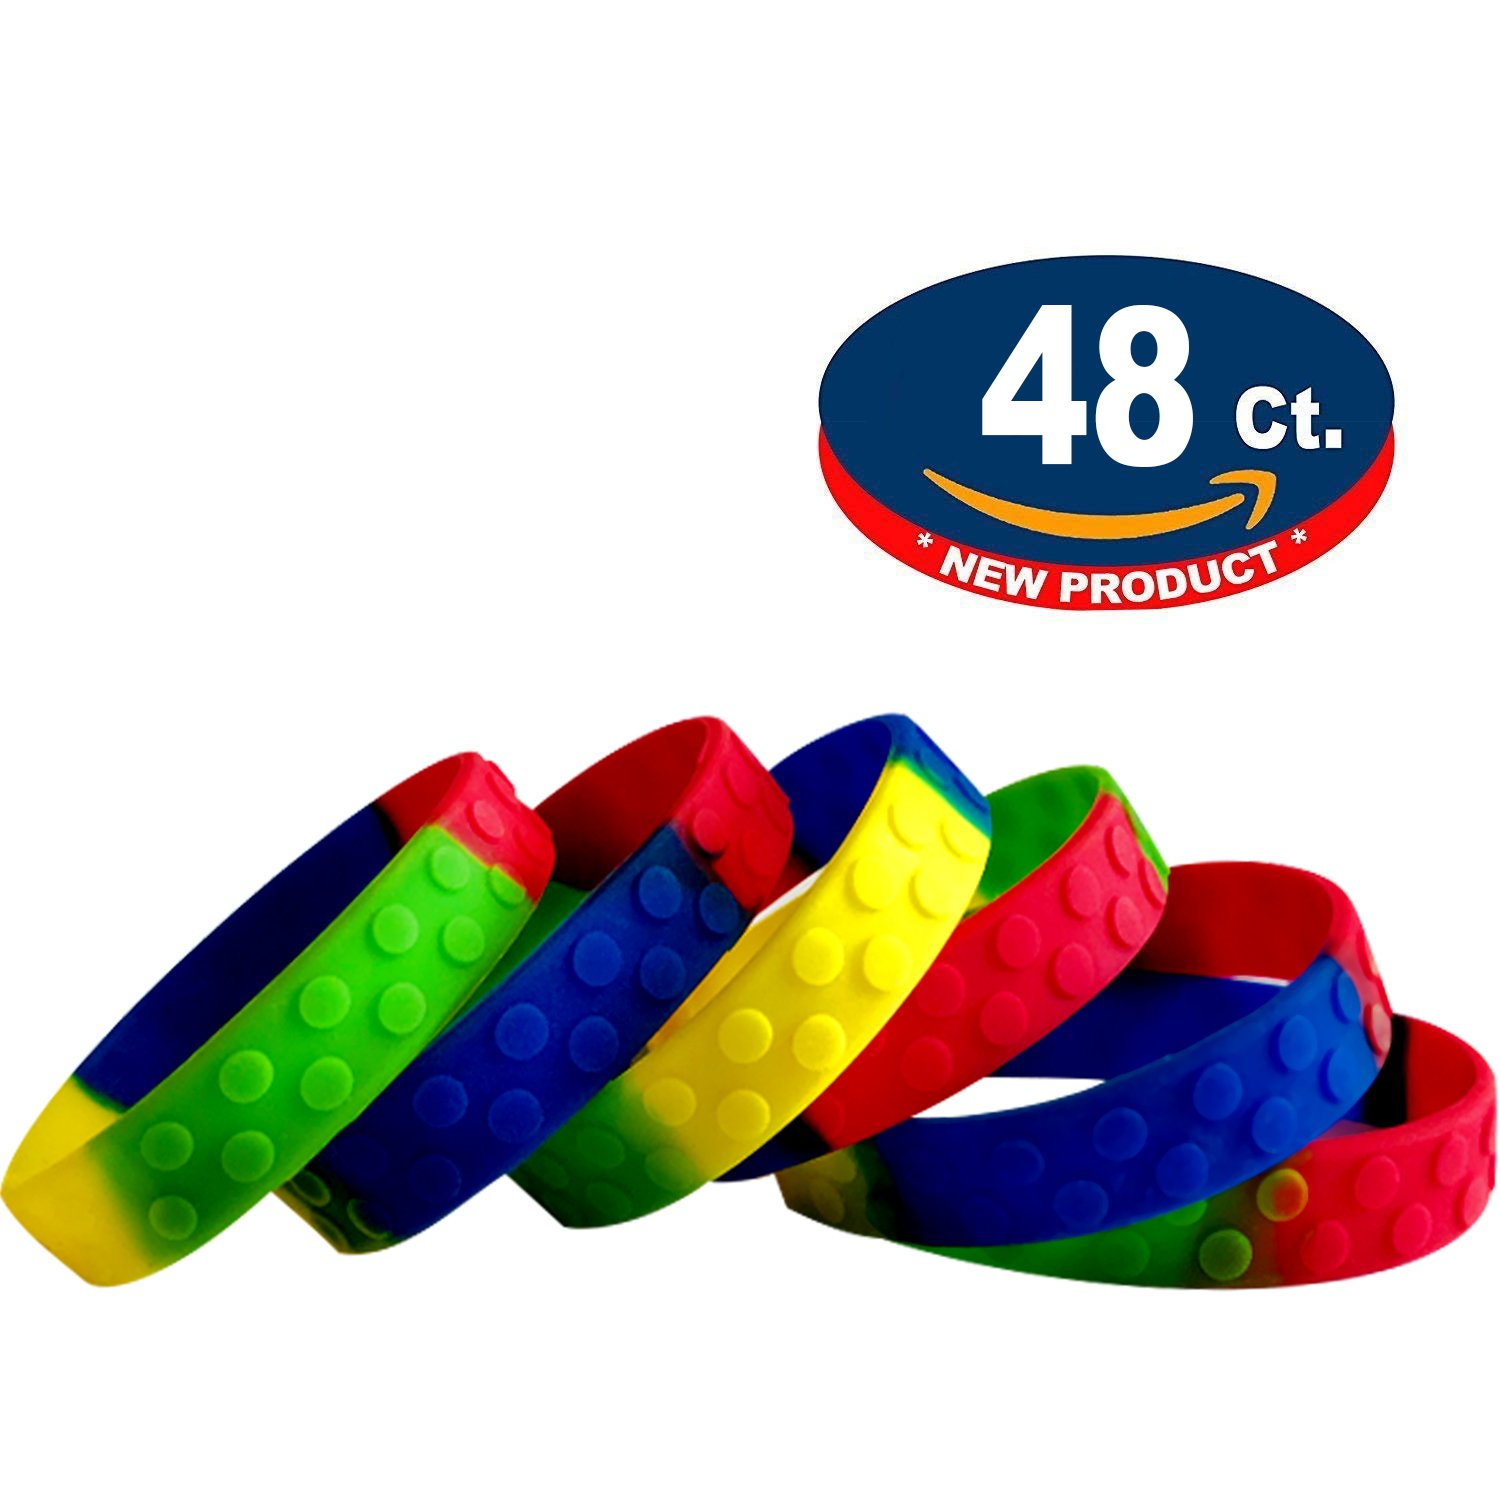 Eventitems Pack Silicone Bracelets Kids Image 1